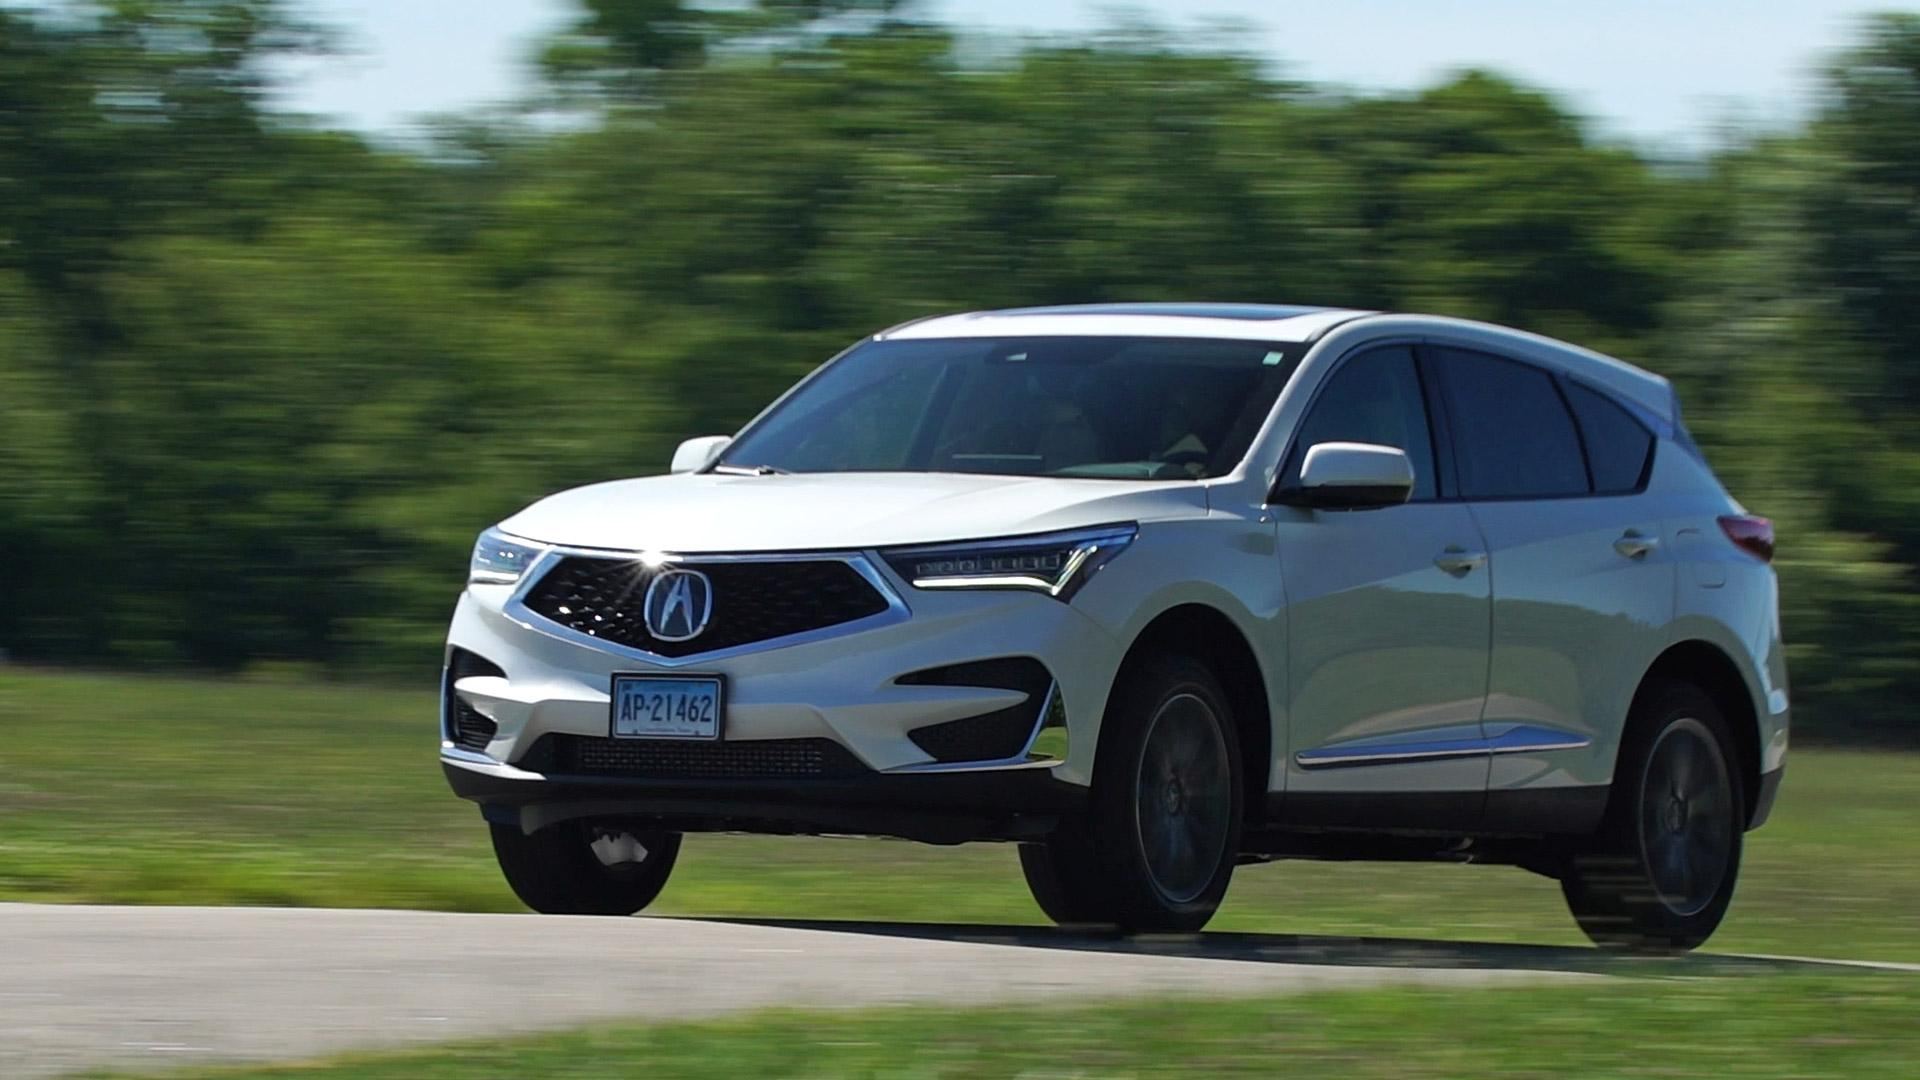 medium resolution of all new 2019 acura rdx shines with peppy engine improved ride and handling